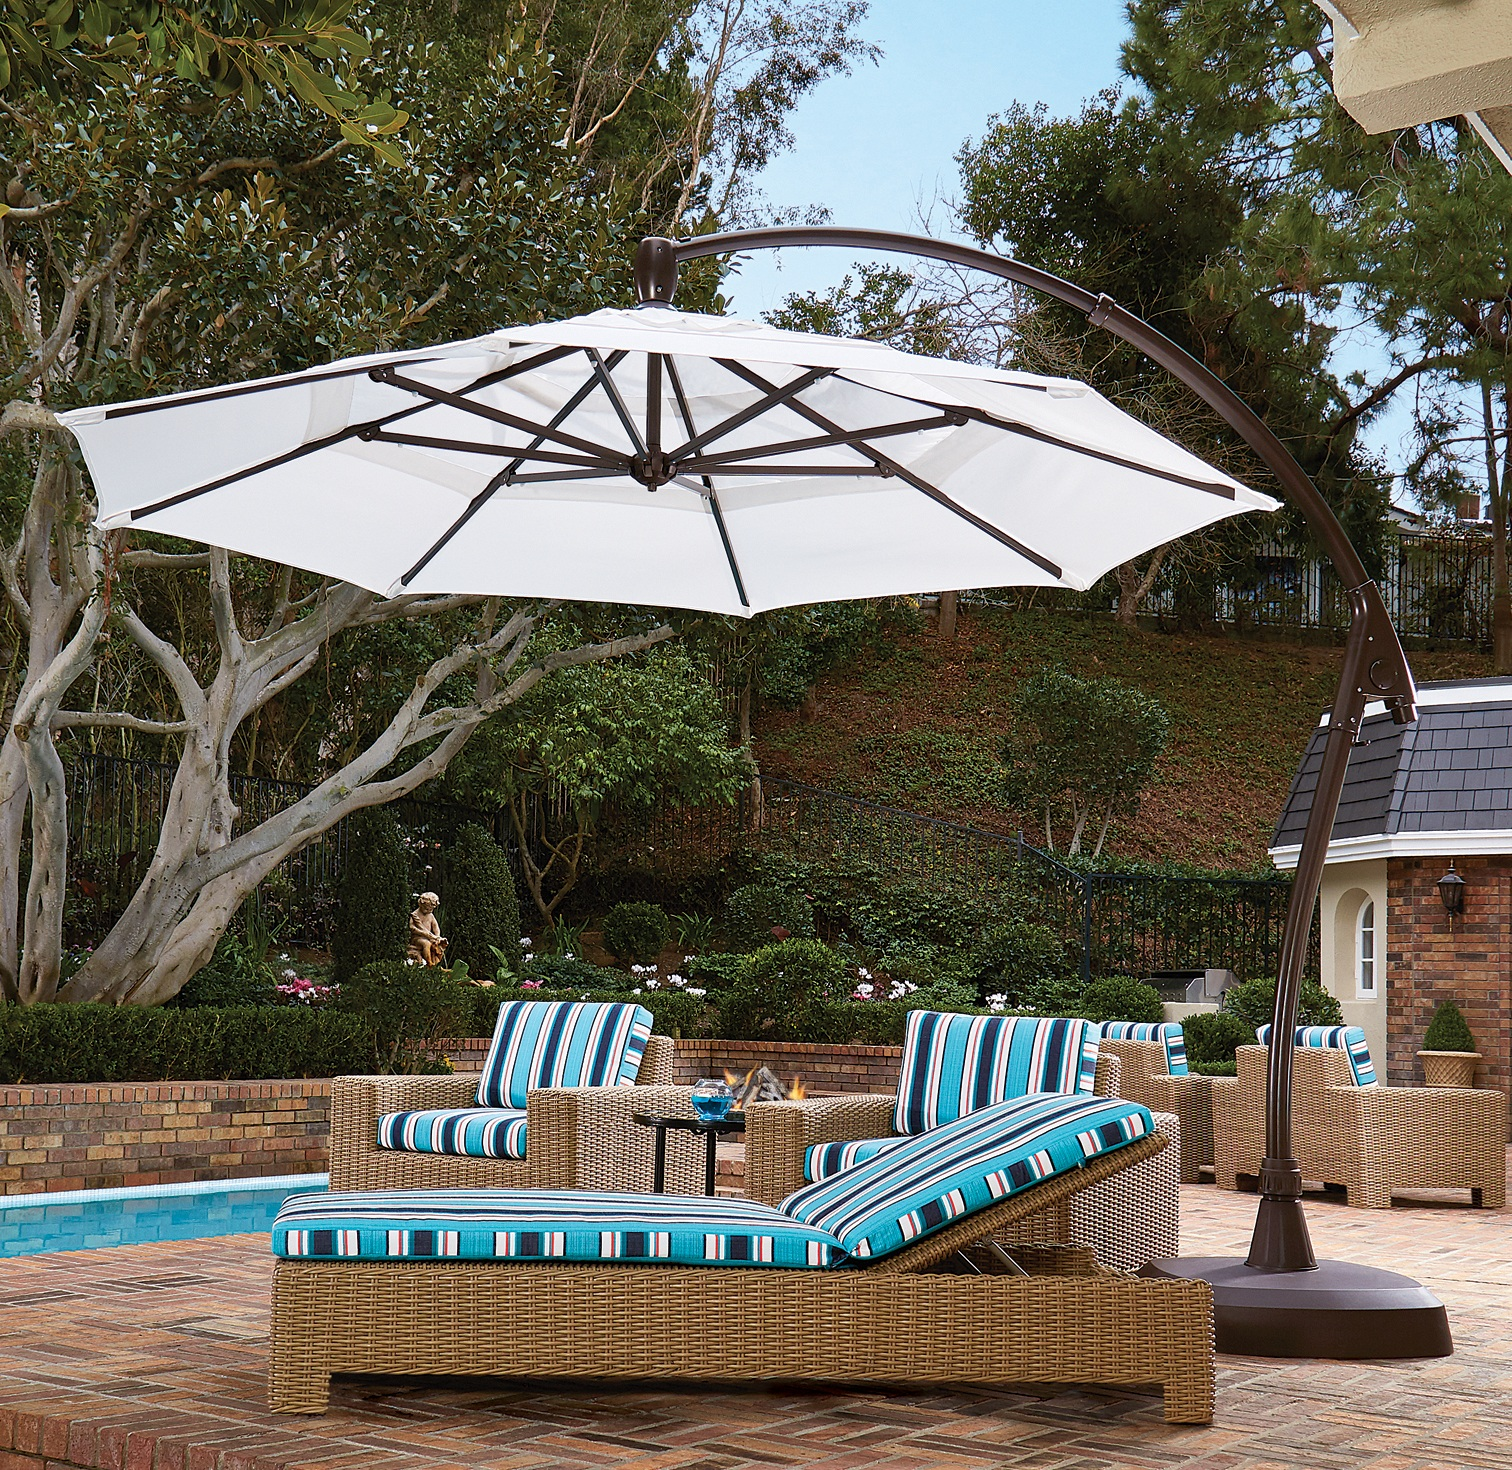 11' AG Umbrella over Chaises with base